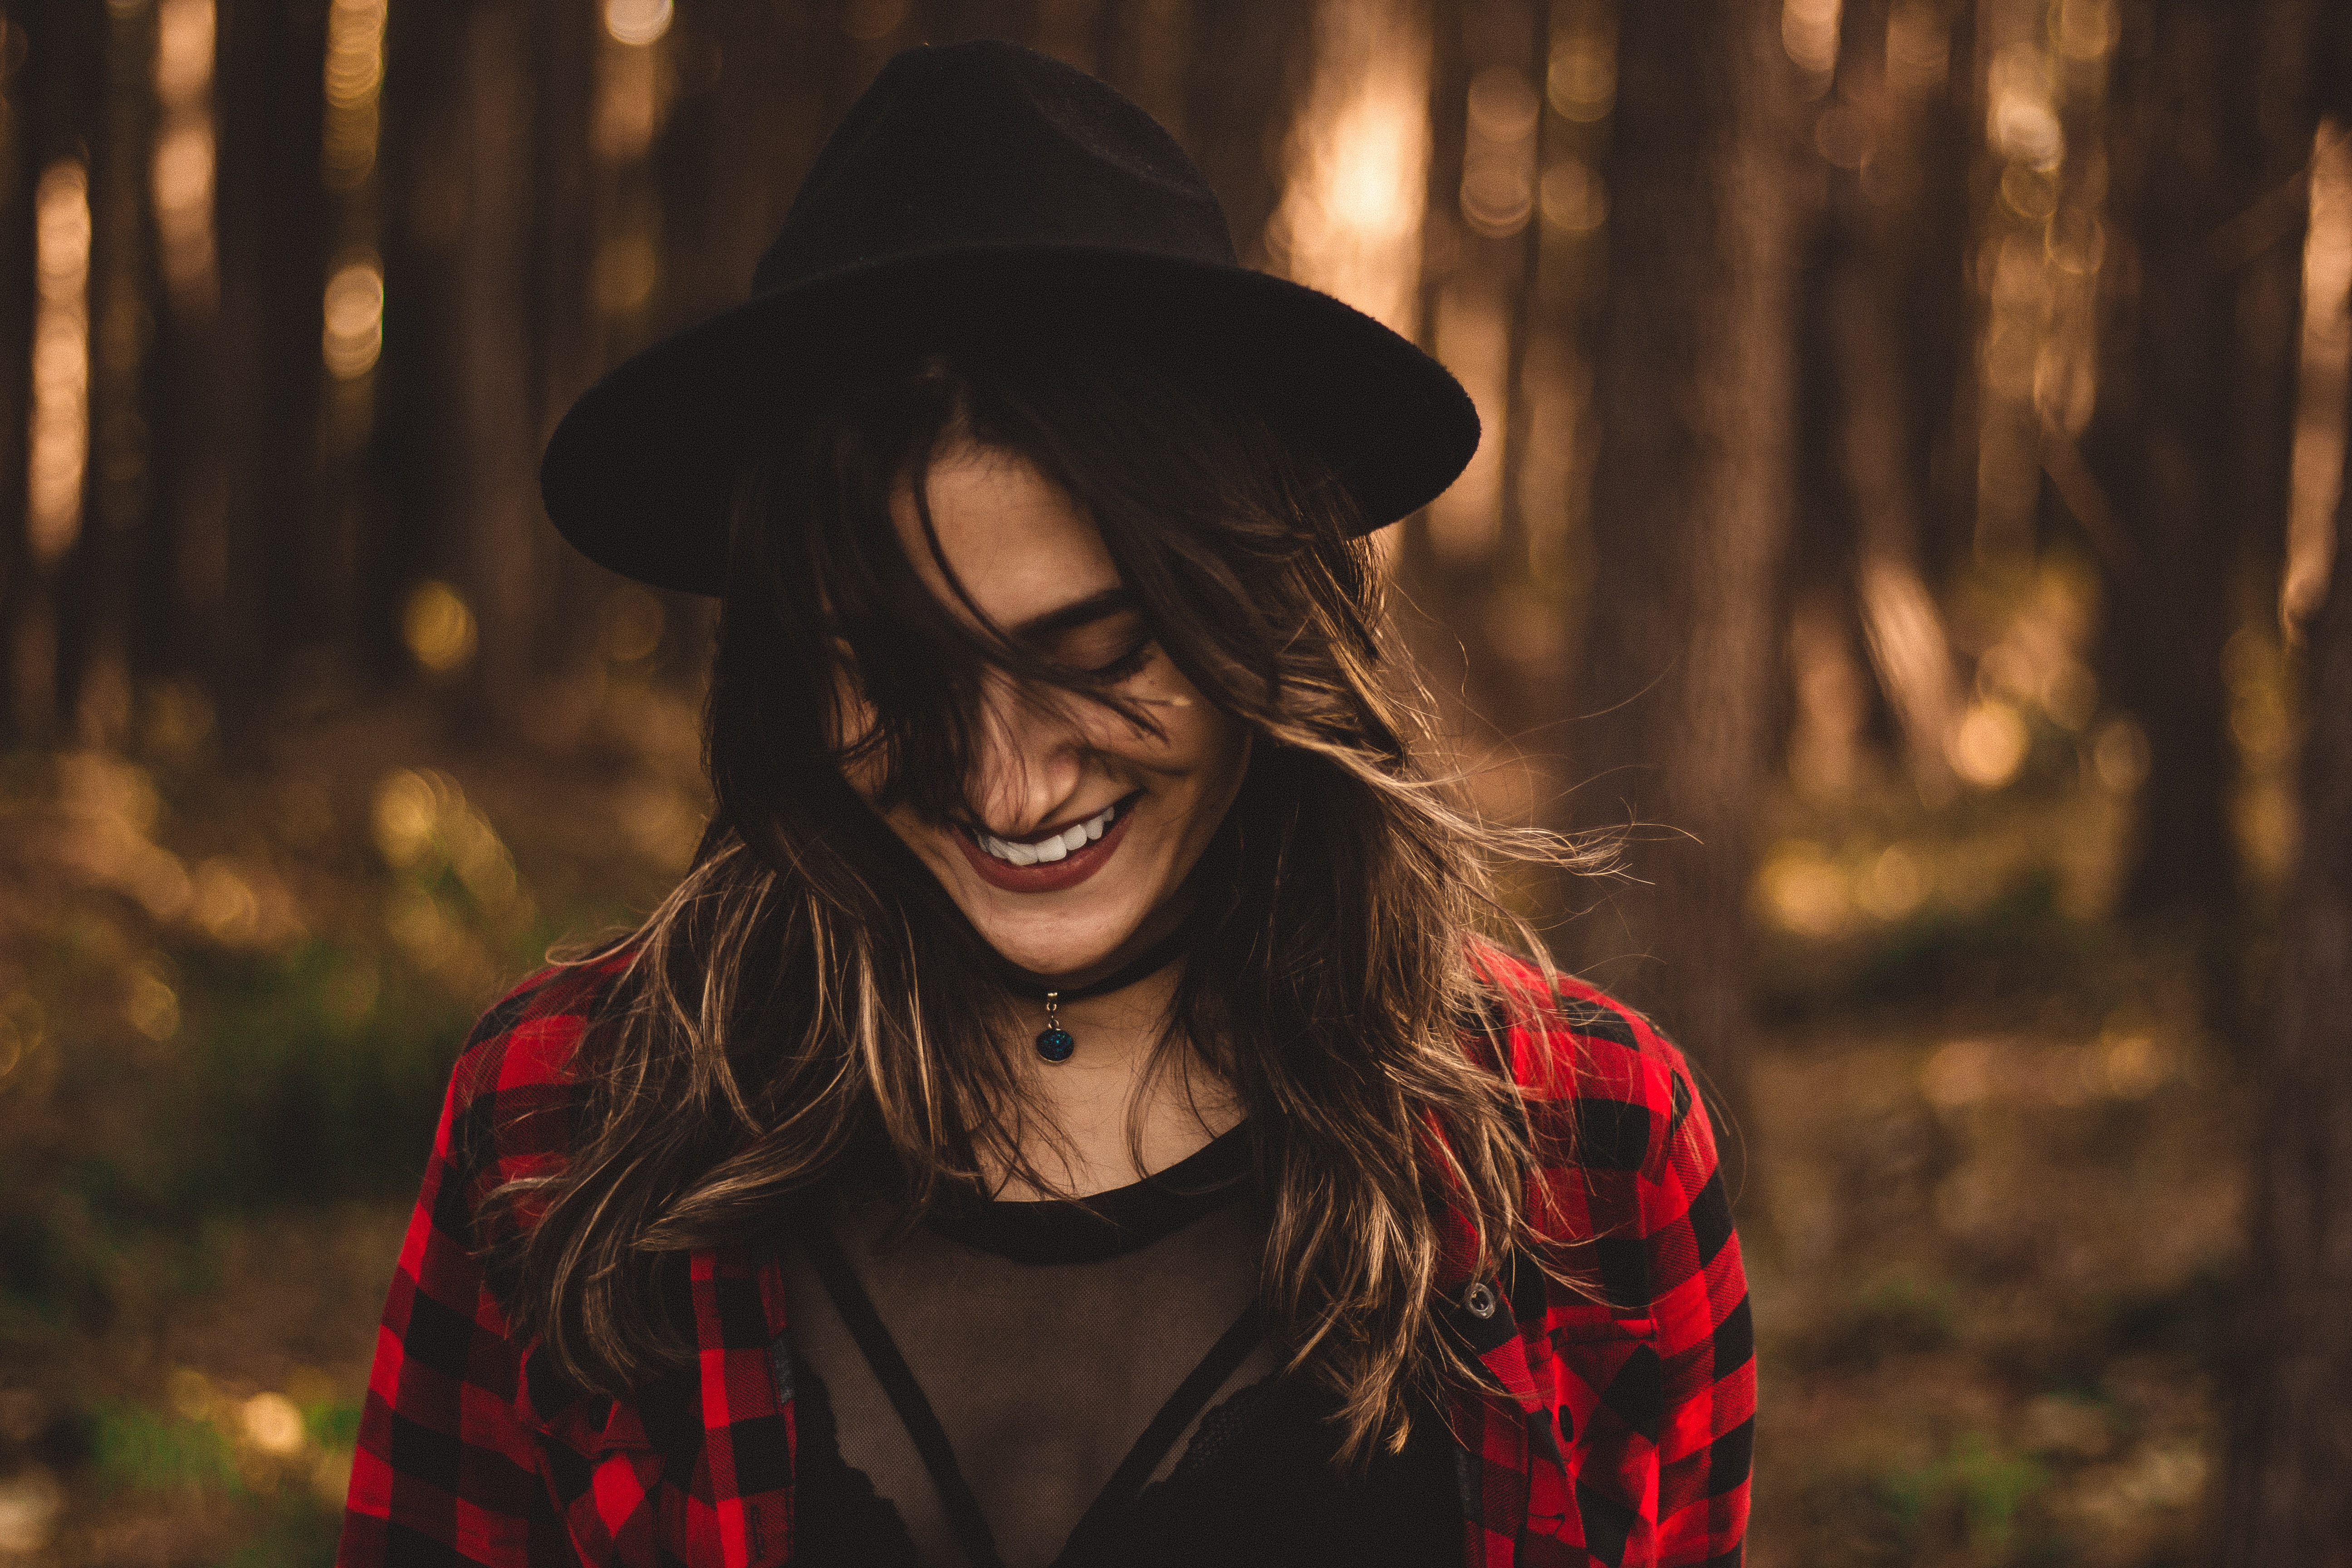 woman in fedora hat surrounded by trees